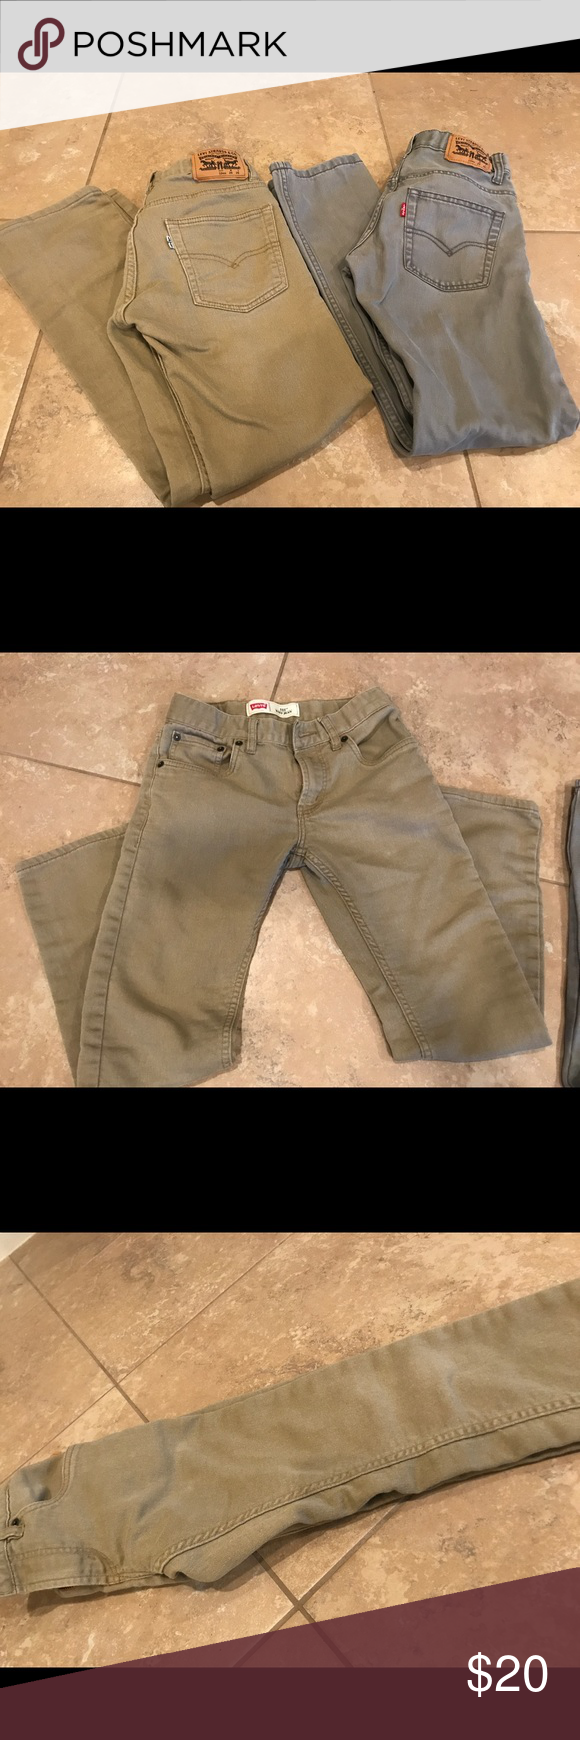 *SOLD IN BUNDLE* Levi's 512 boys jeans 2 pairs of 511 jeans size 26 or boys 16 no fading on the knees, in great condition! Levi's Bottoms Jeans